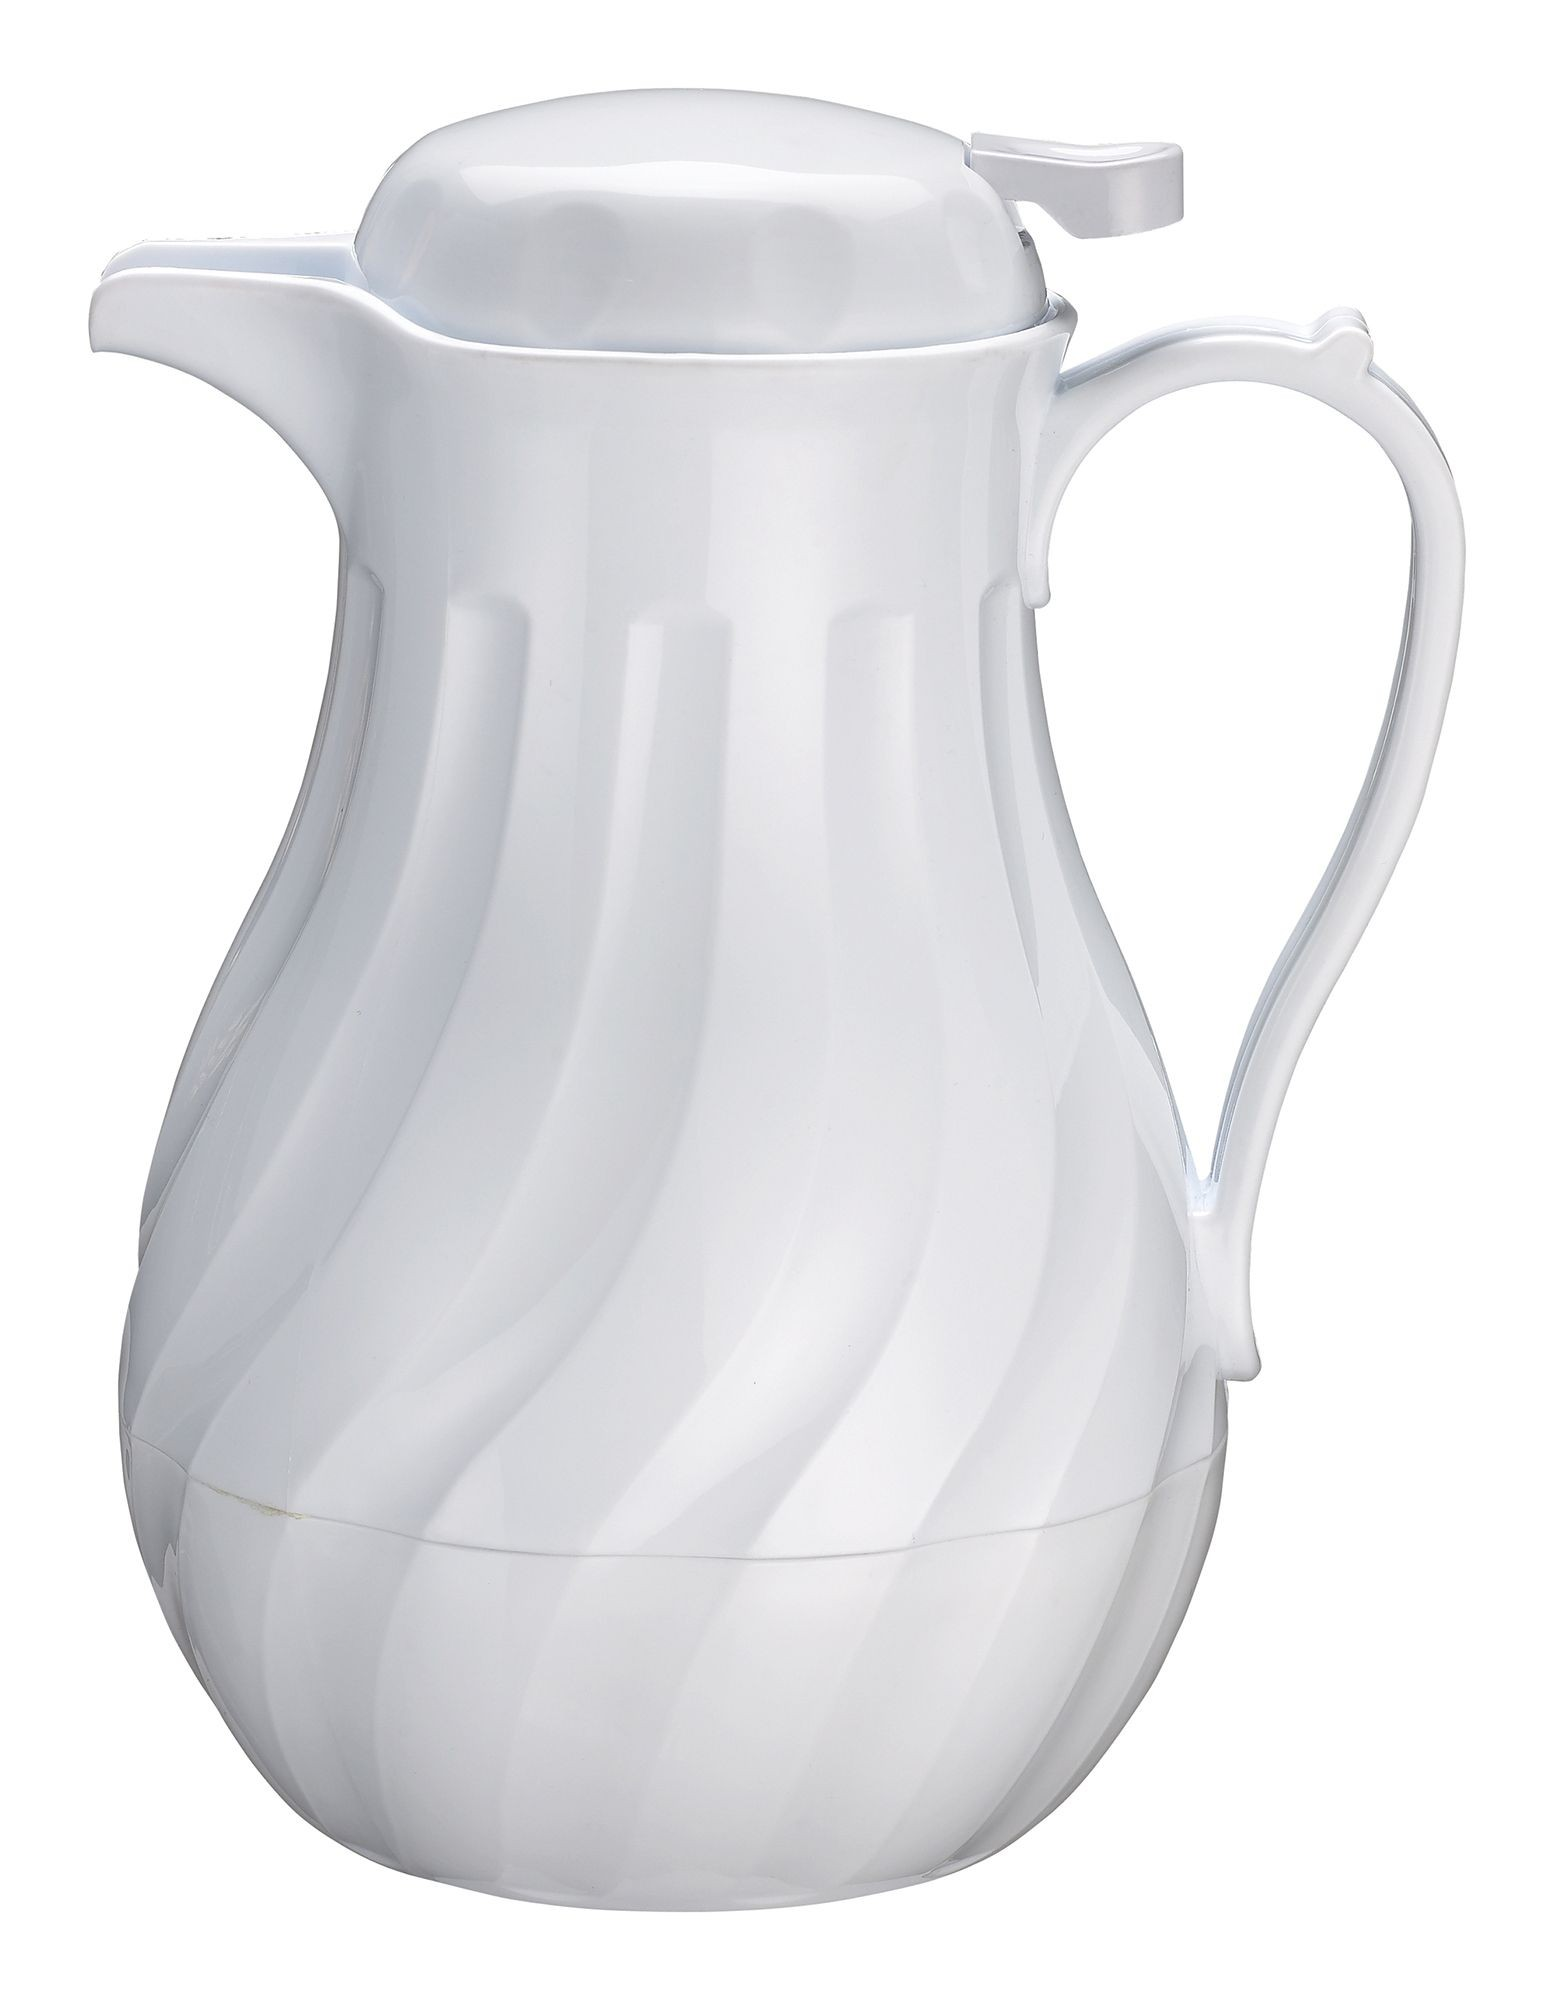 Winco VSW-64W White Insulated Swirl Design Beverage Server 64 oz.